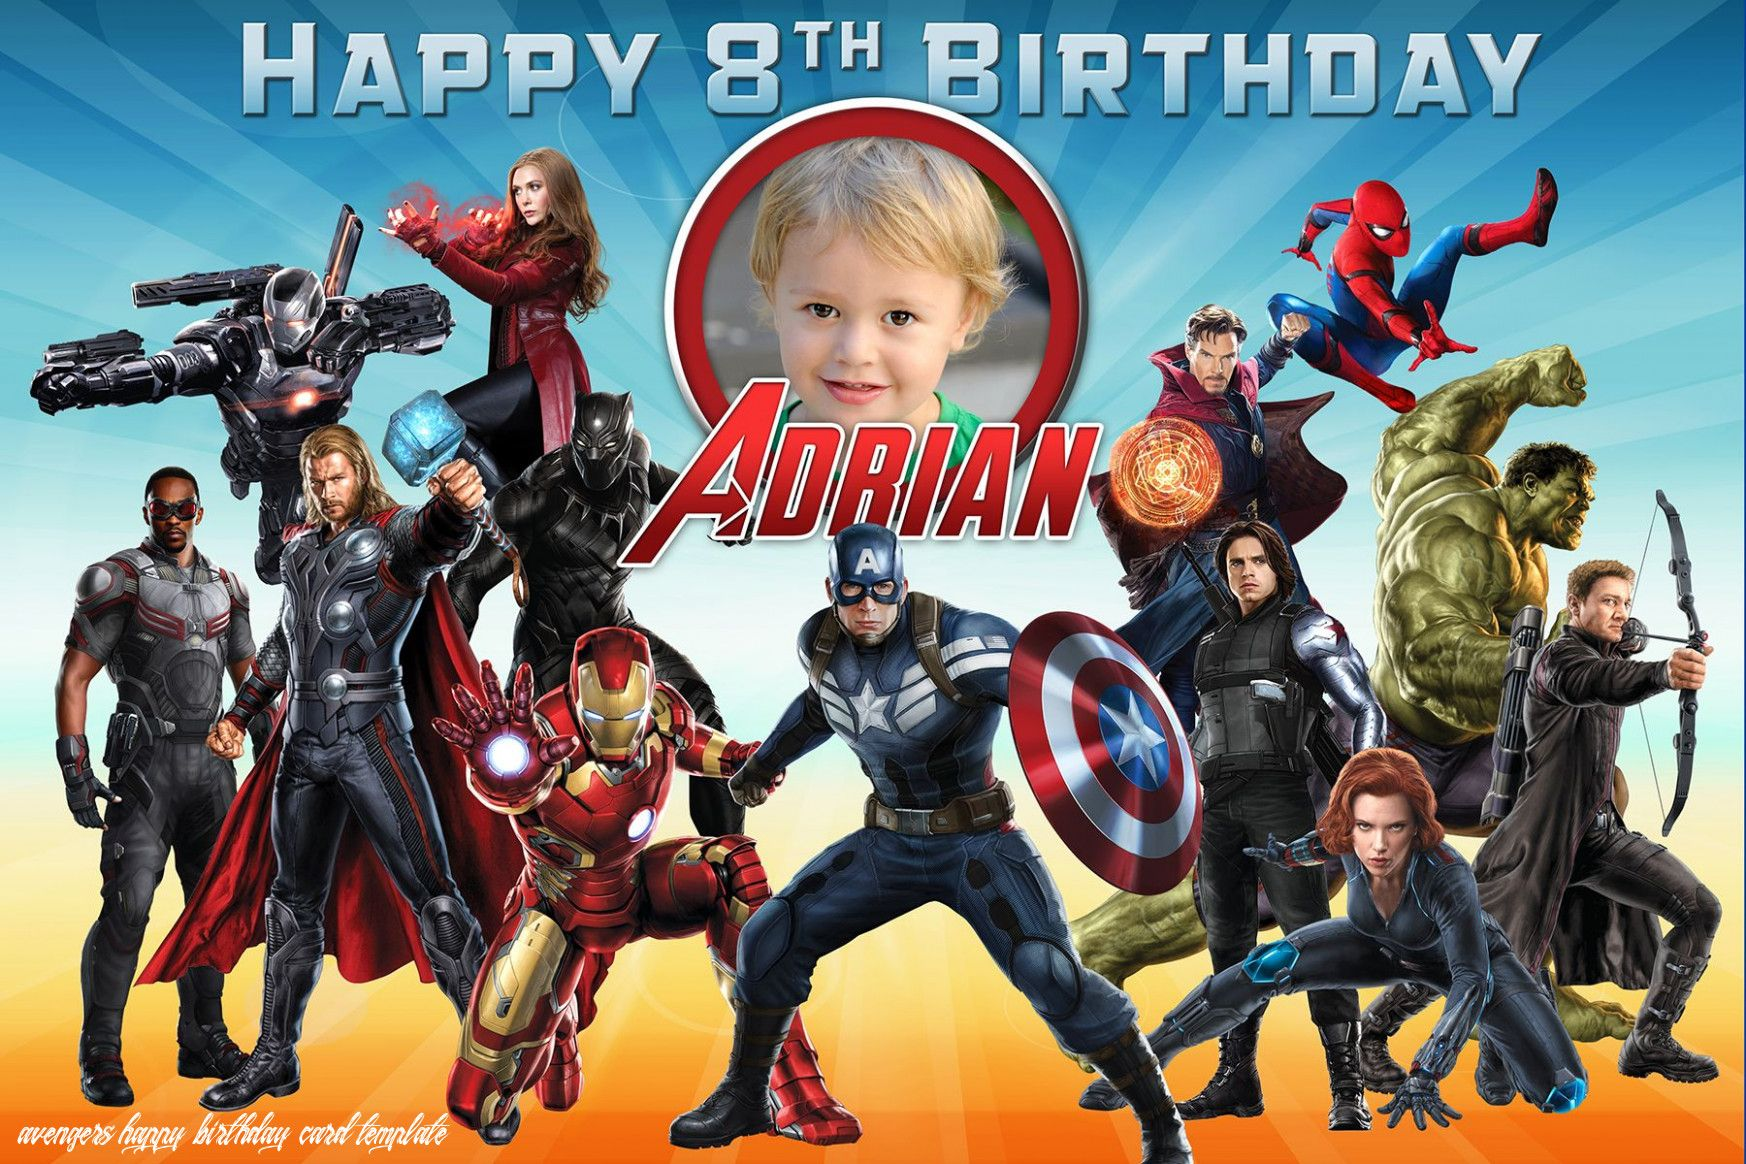 Avengers Happy Birthday Card Template In 2020 Birthday Card Template Avengers Birthday Happy Birthday Cards